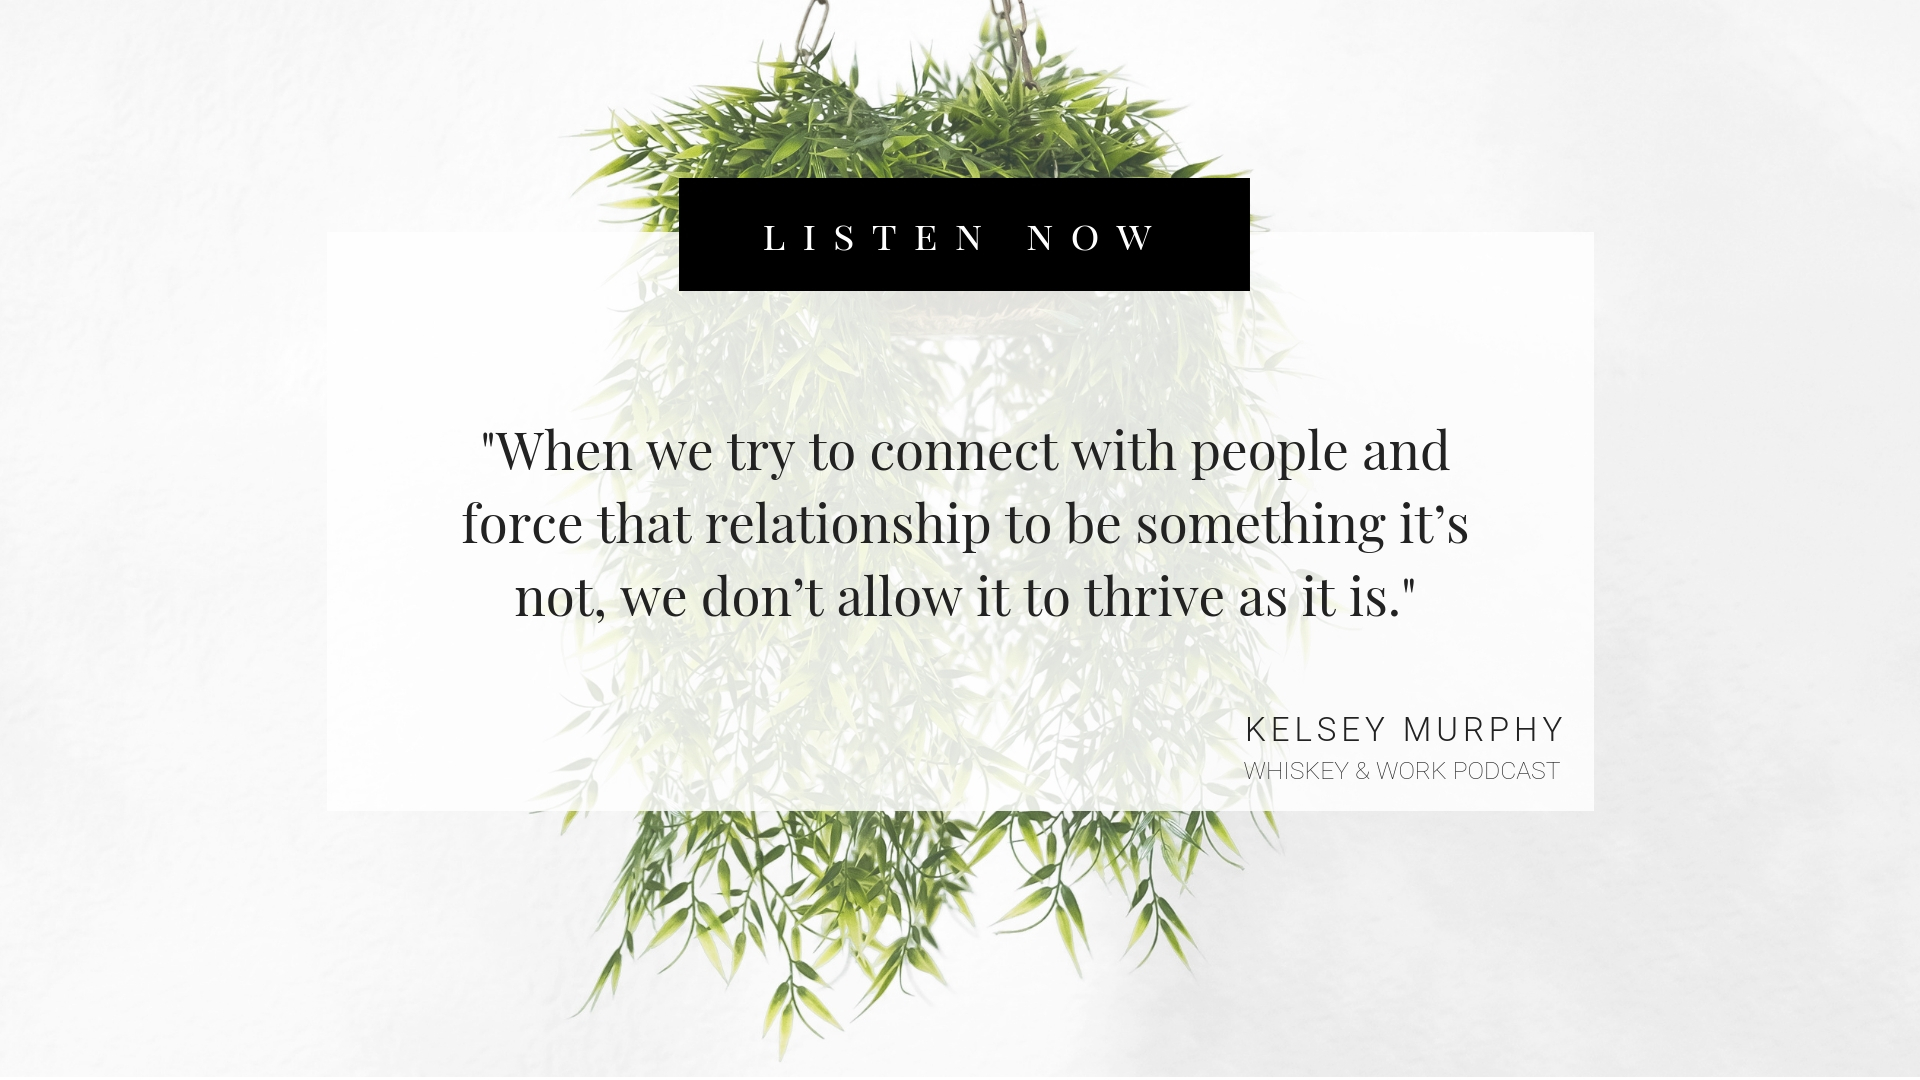 Feeling Lonely & Needy? Whiskey and Work Podcast with Kelsey Murphy